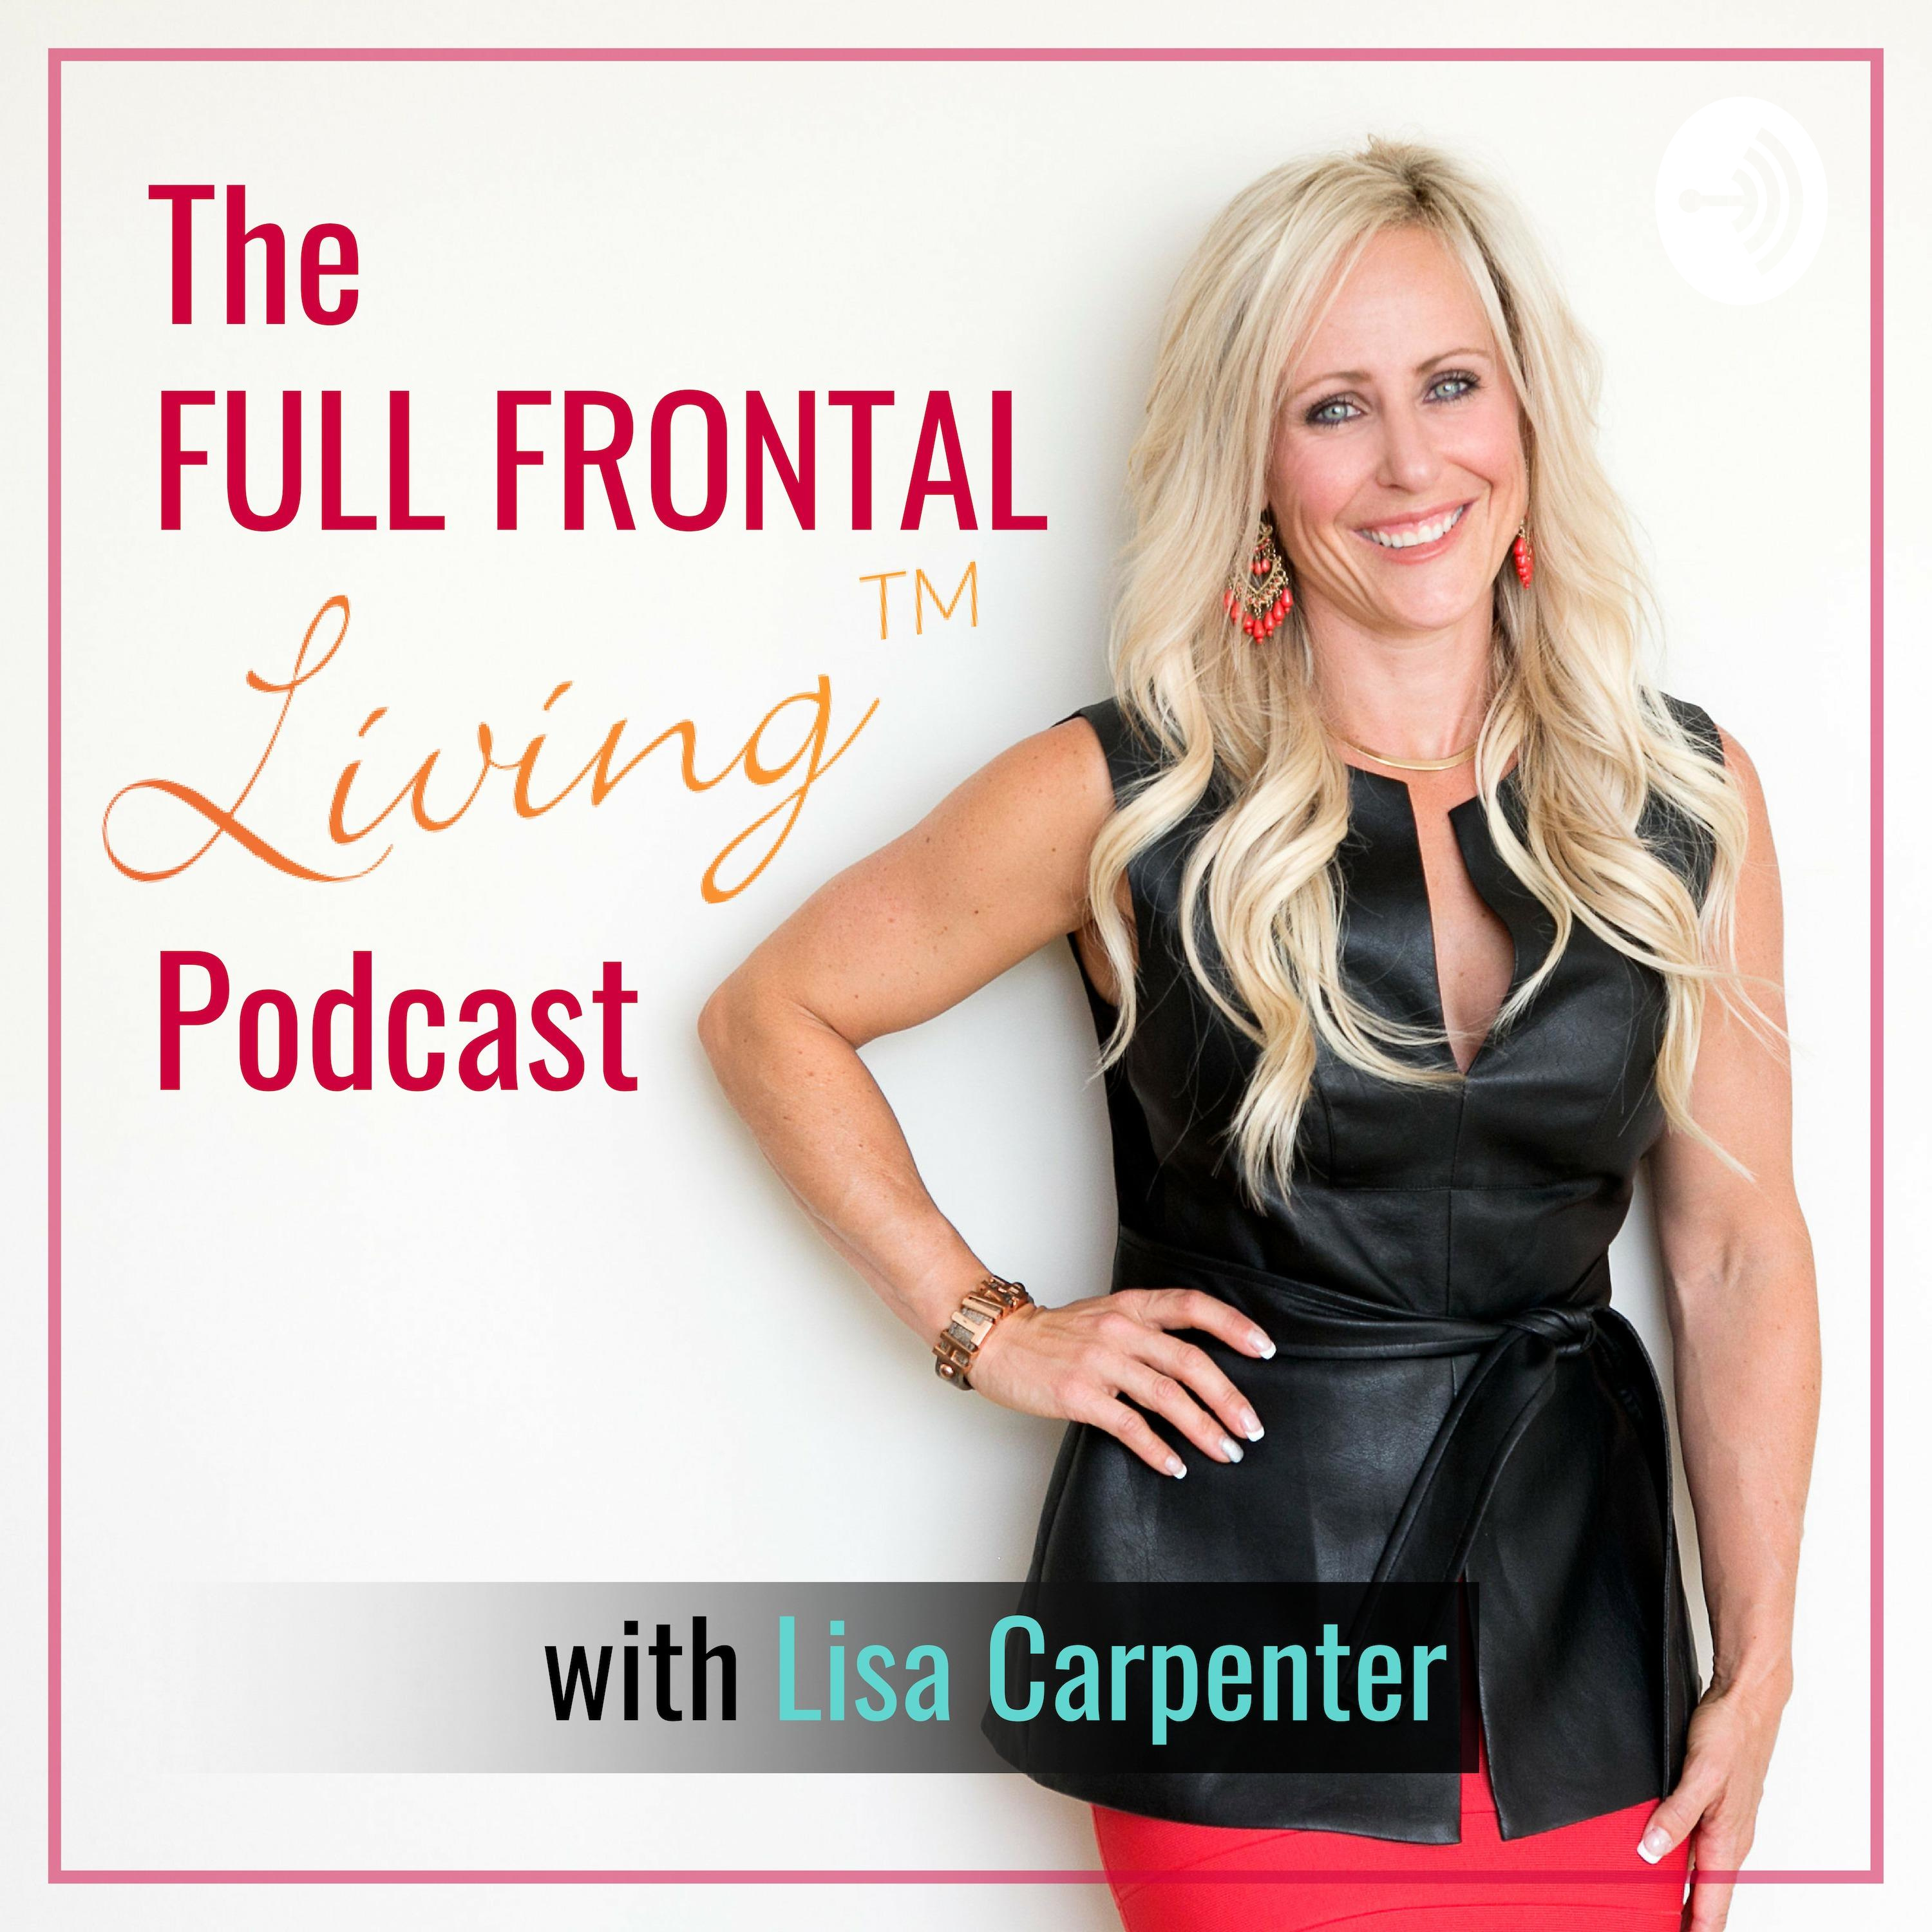 The Full Frontal Living™ Podcast with Lisa Carpenter